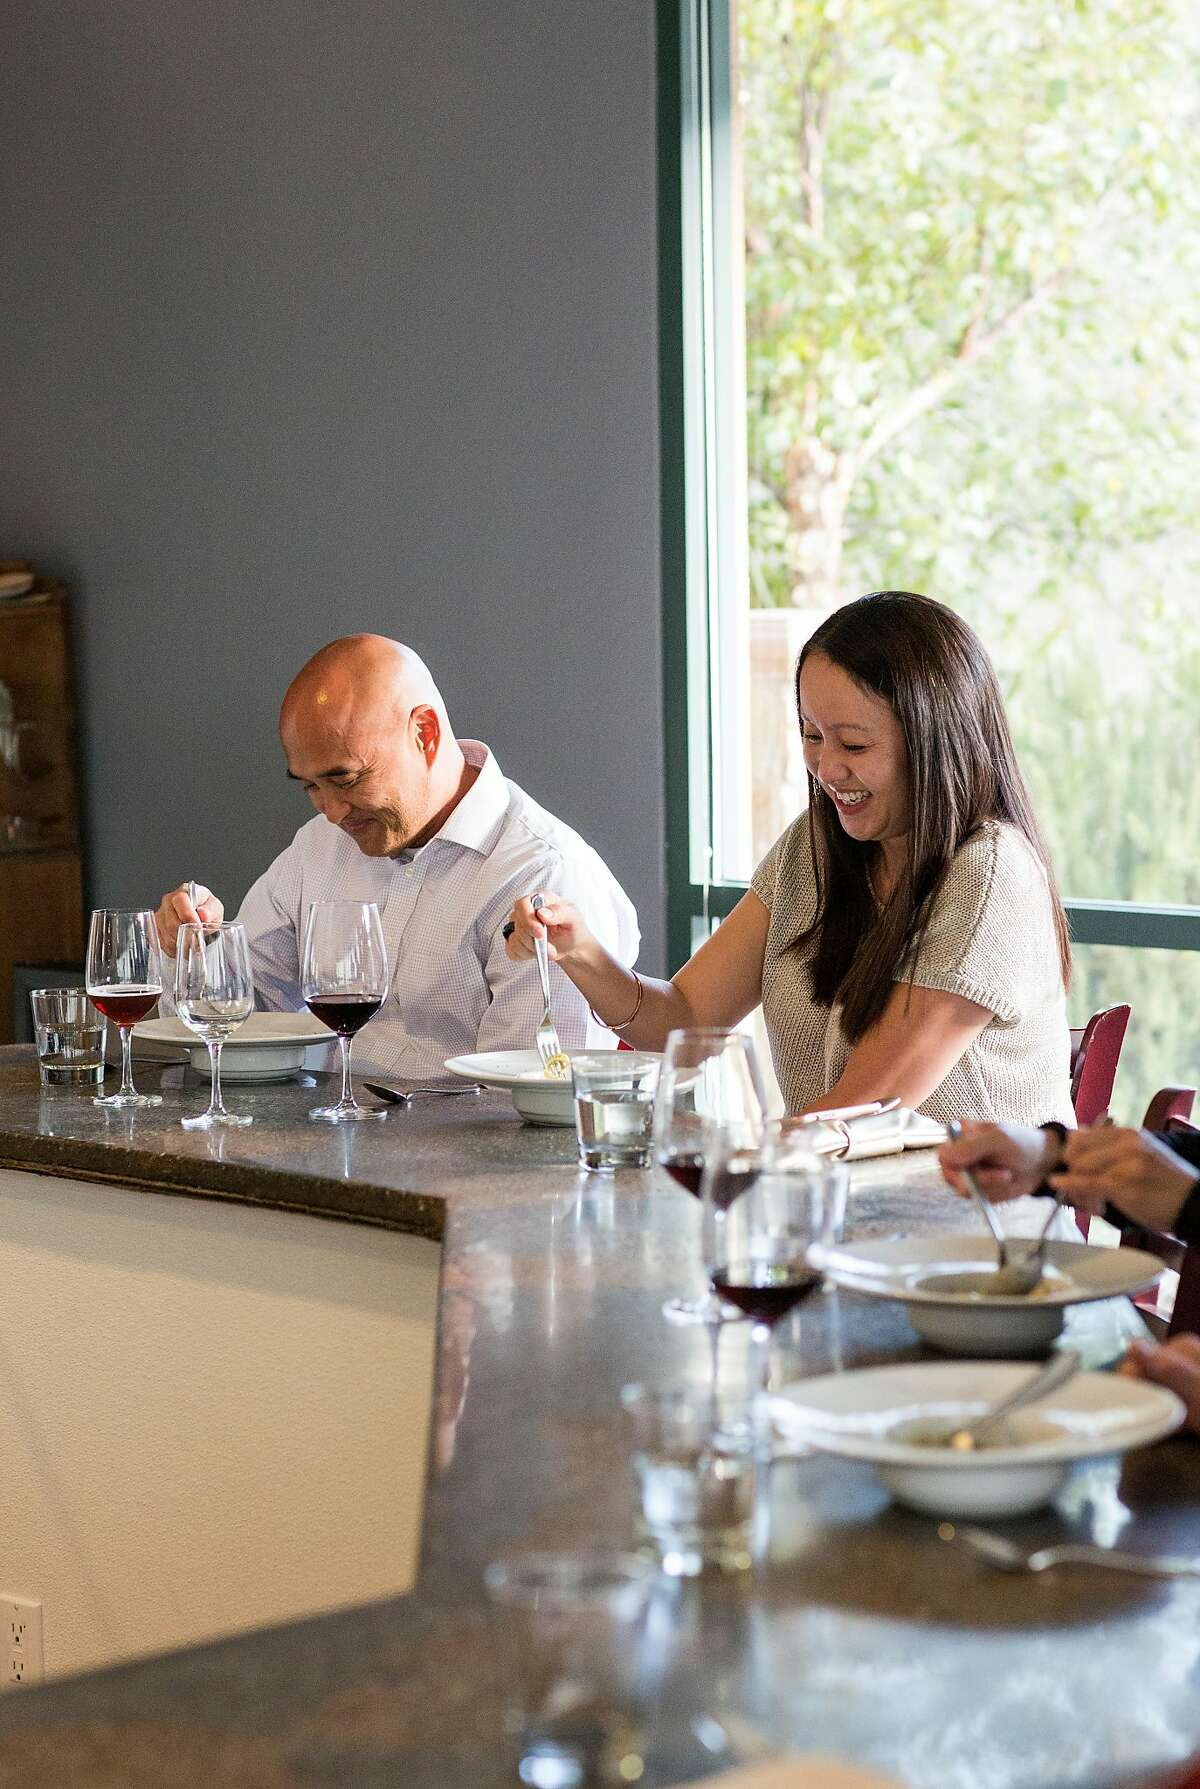 Stephen Partridge (left) dines with Mary Gee at the restaurant Michael Warring in Vallejo, Calif., on Sunday, October 1, 2017. The restaurant offers a six course tasting menu with the option for wine or beer pairings.